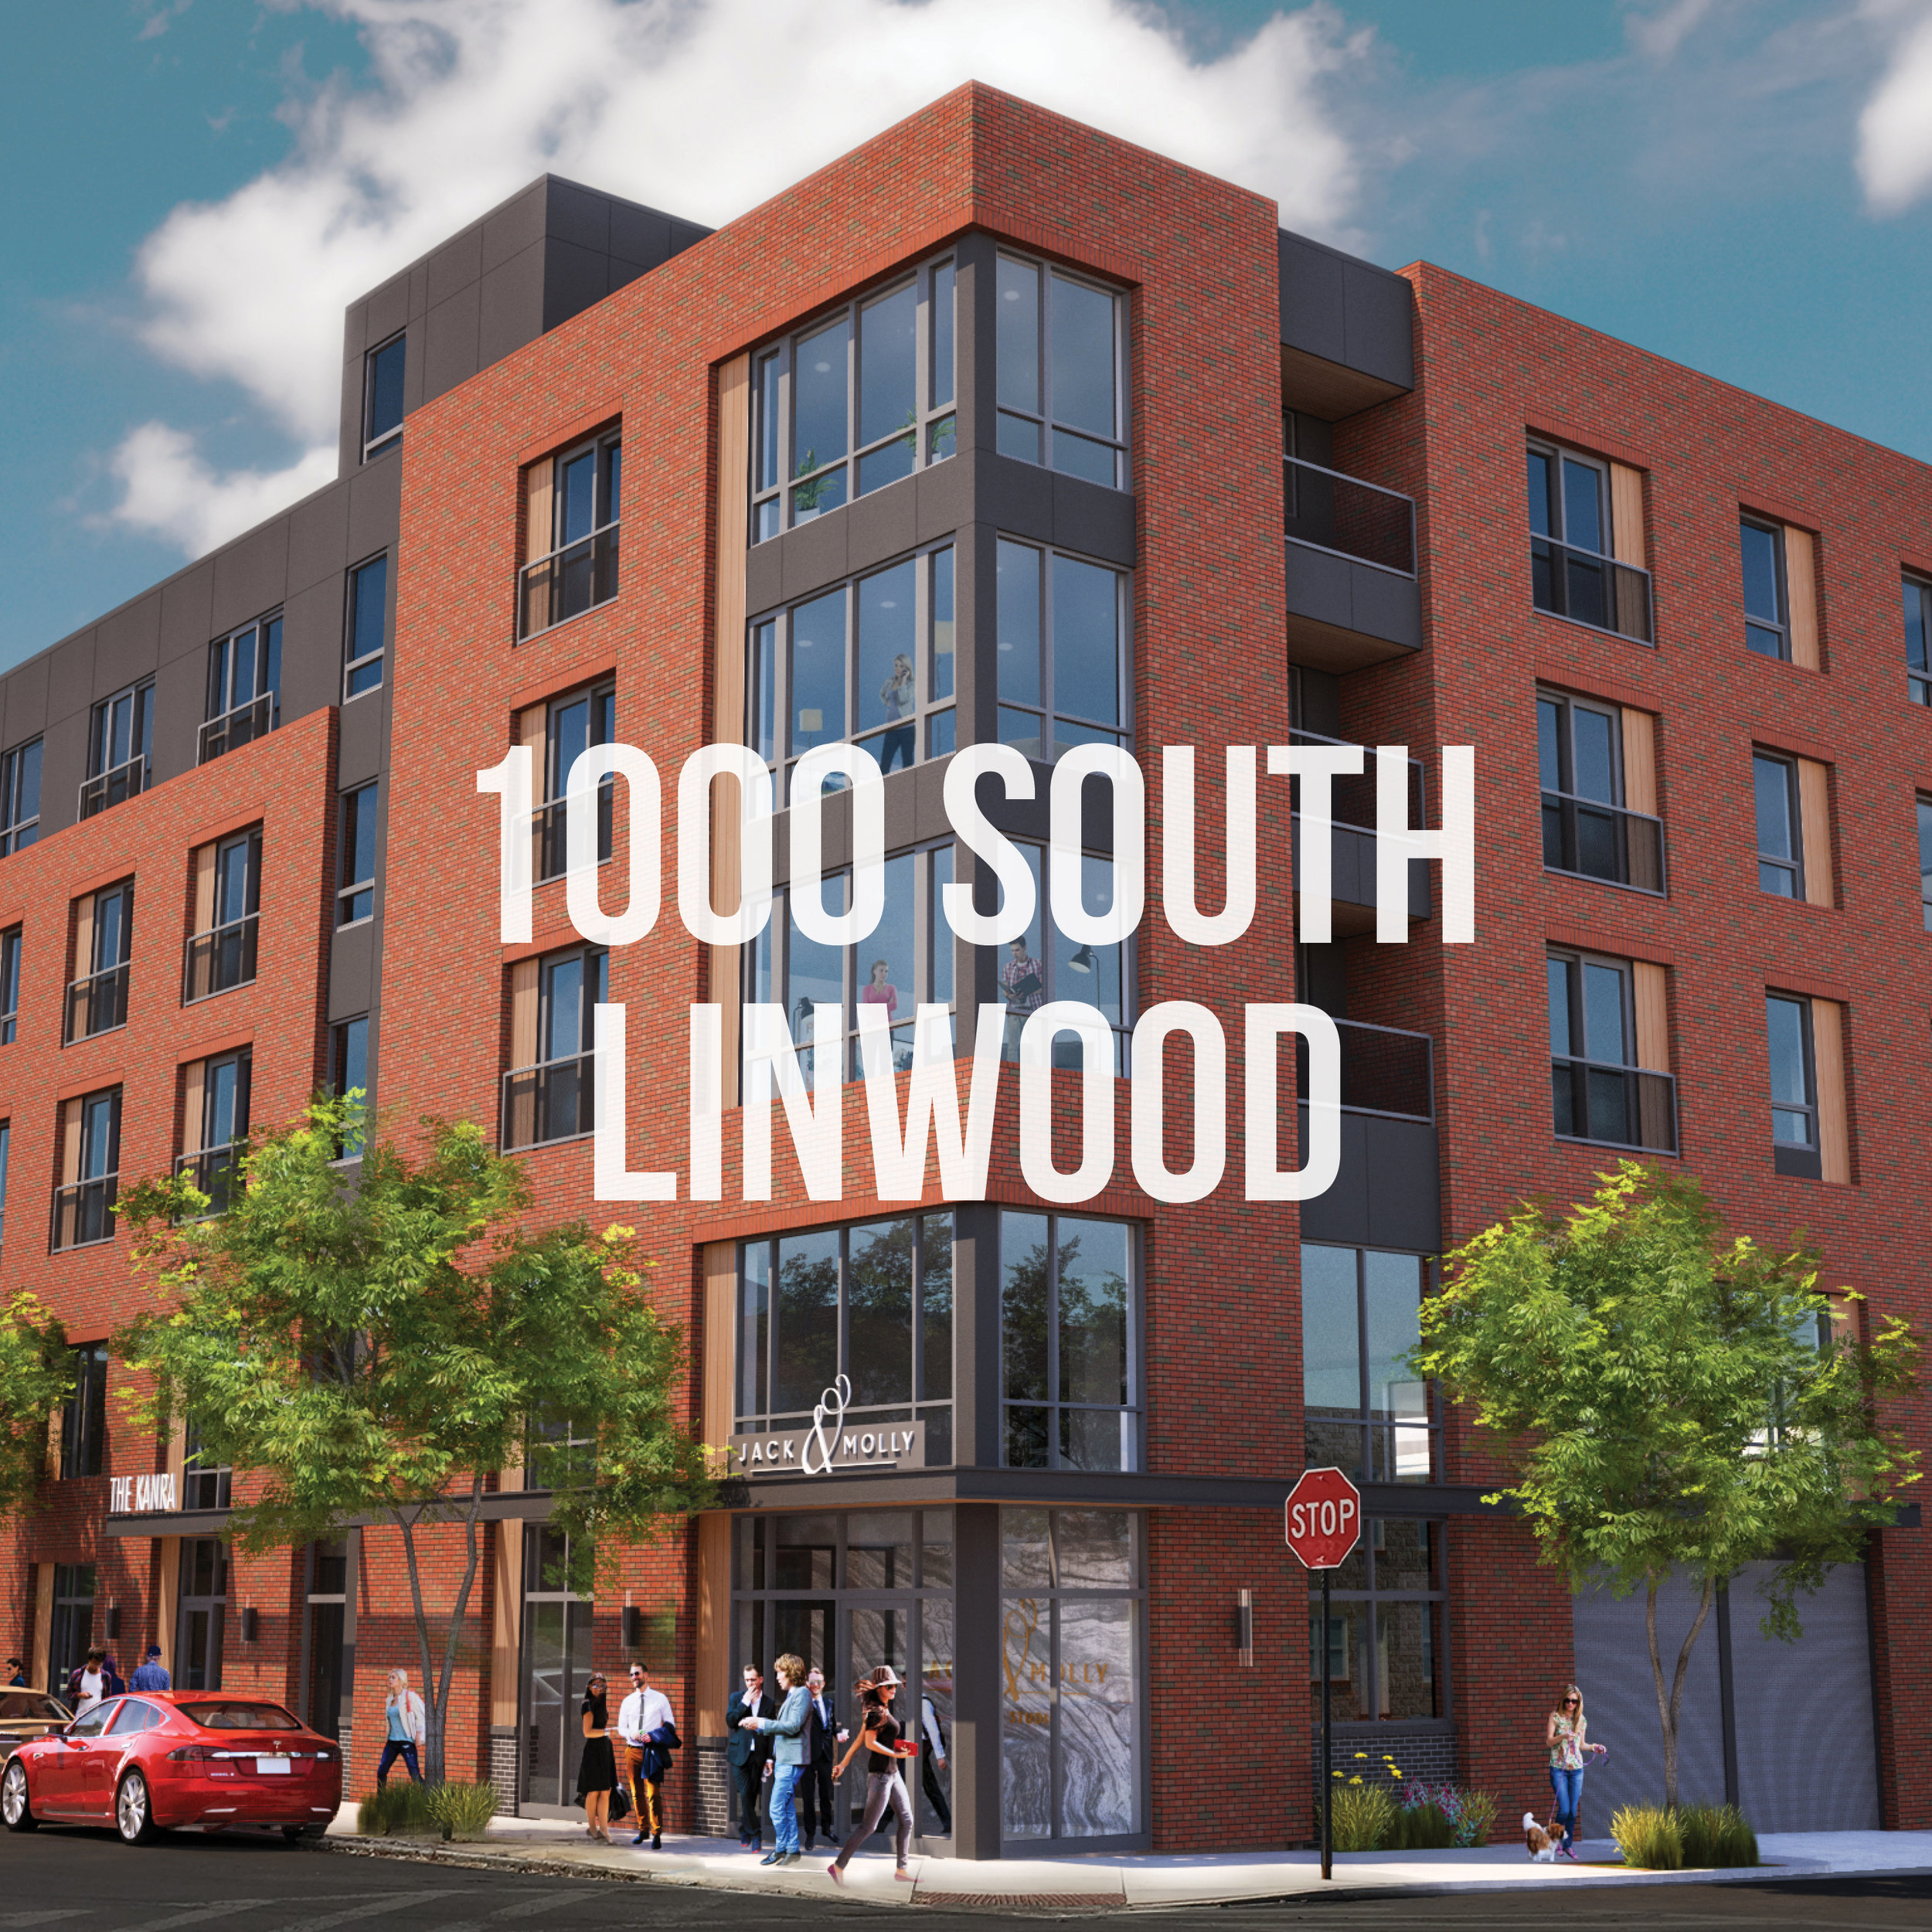 1000 South Linwood